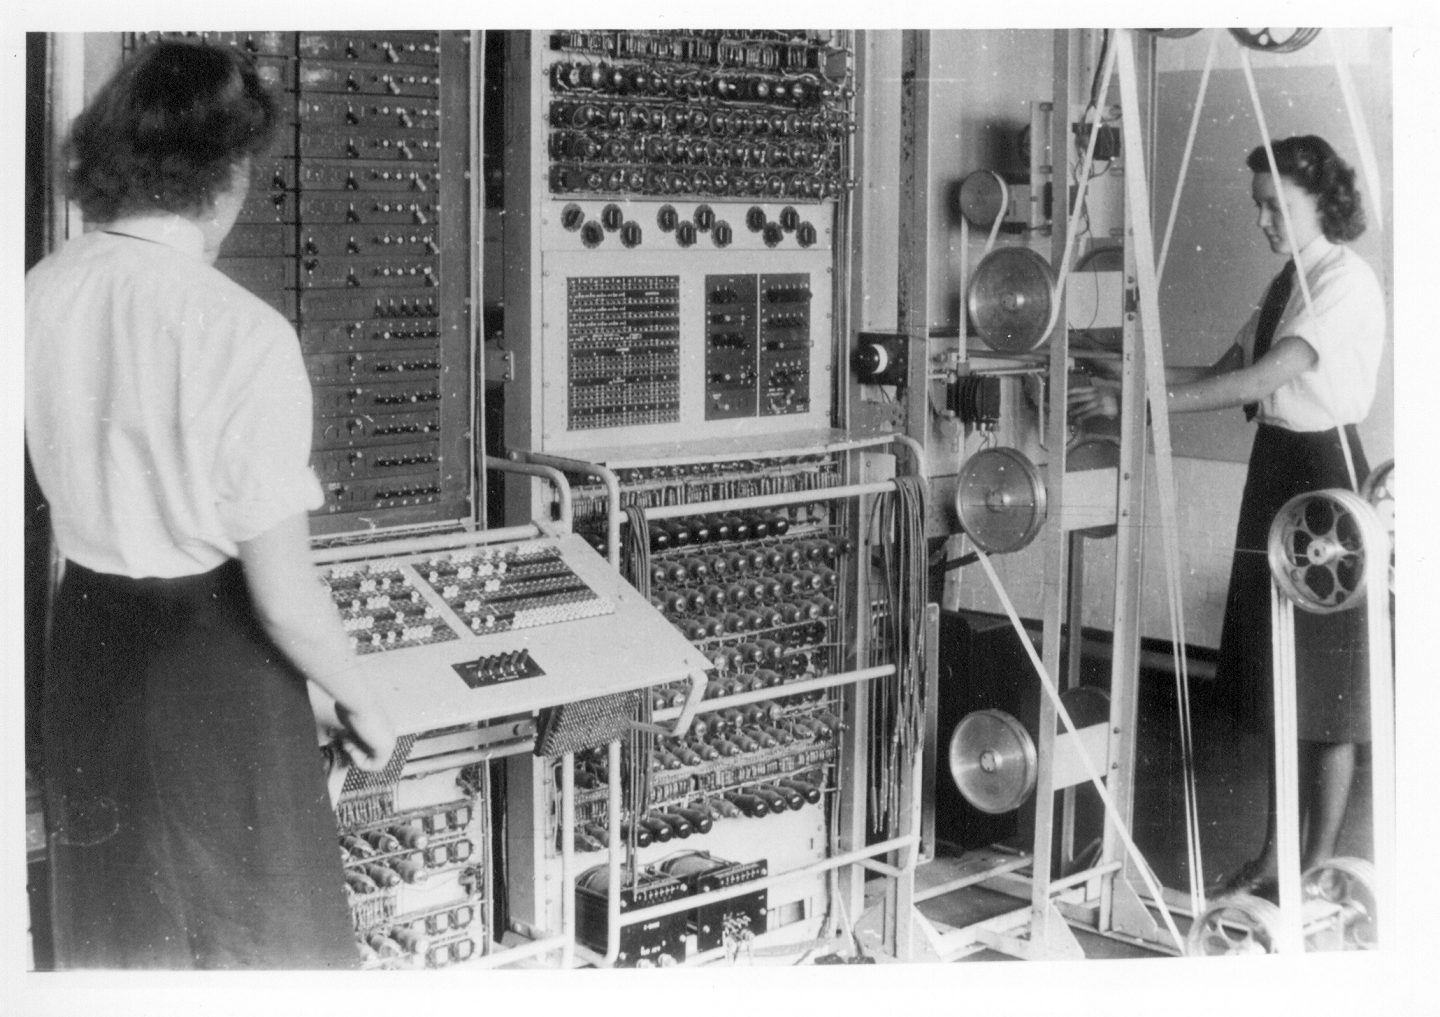 Special Event: Talk, overnight stay and a Trip to Bletchley Park